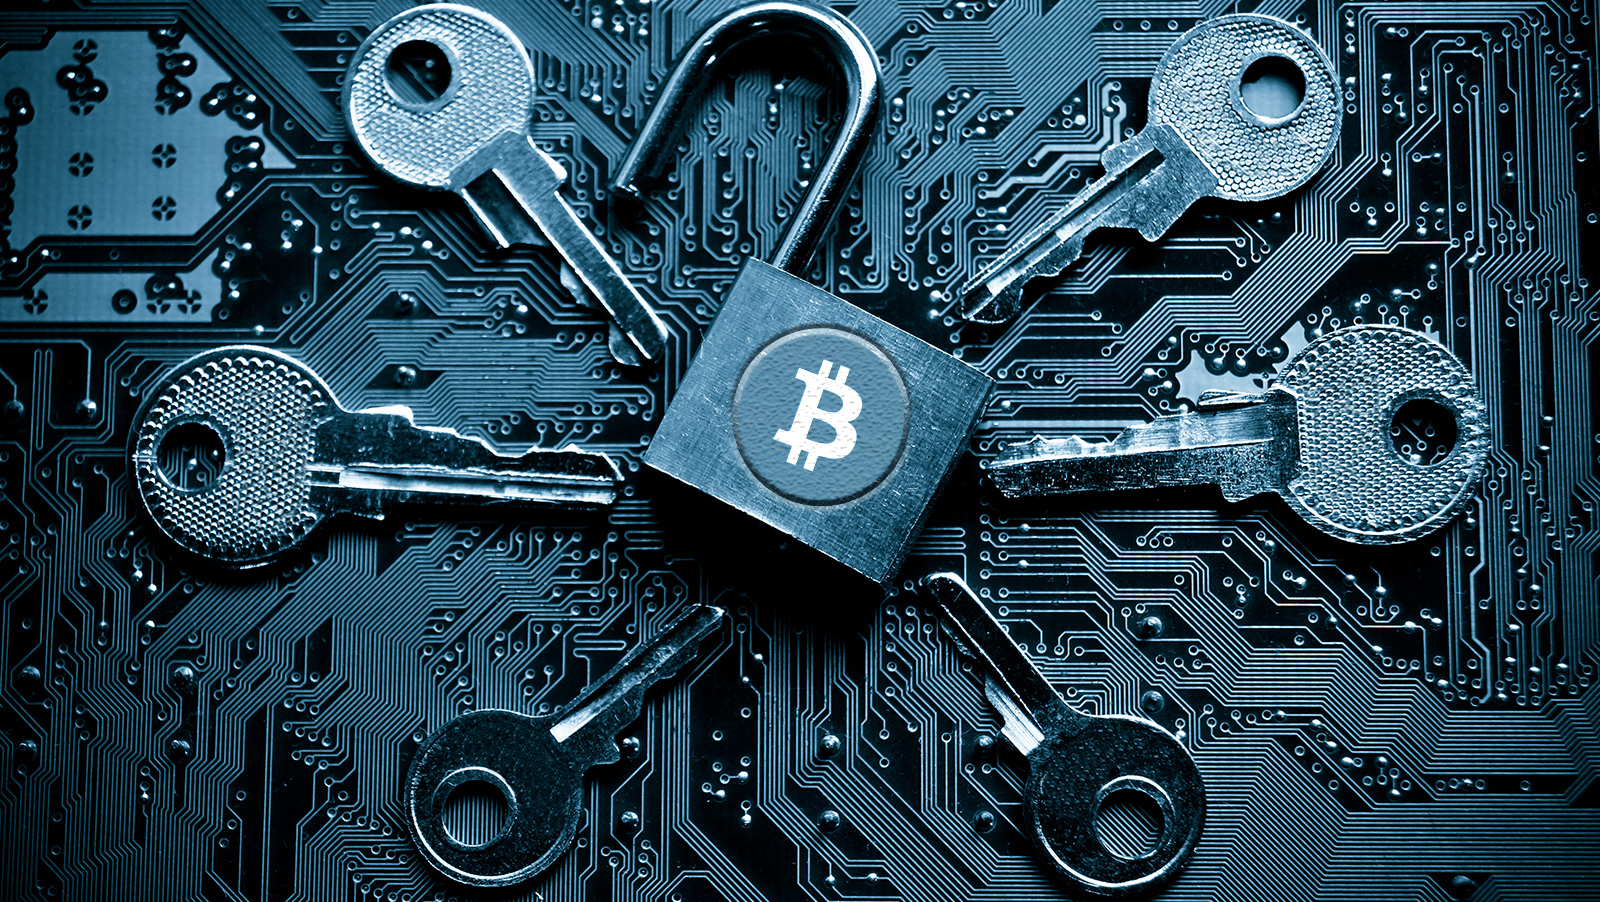 Bitcoin exchange BTC-e falls victim to DDoS attack